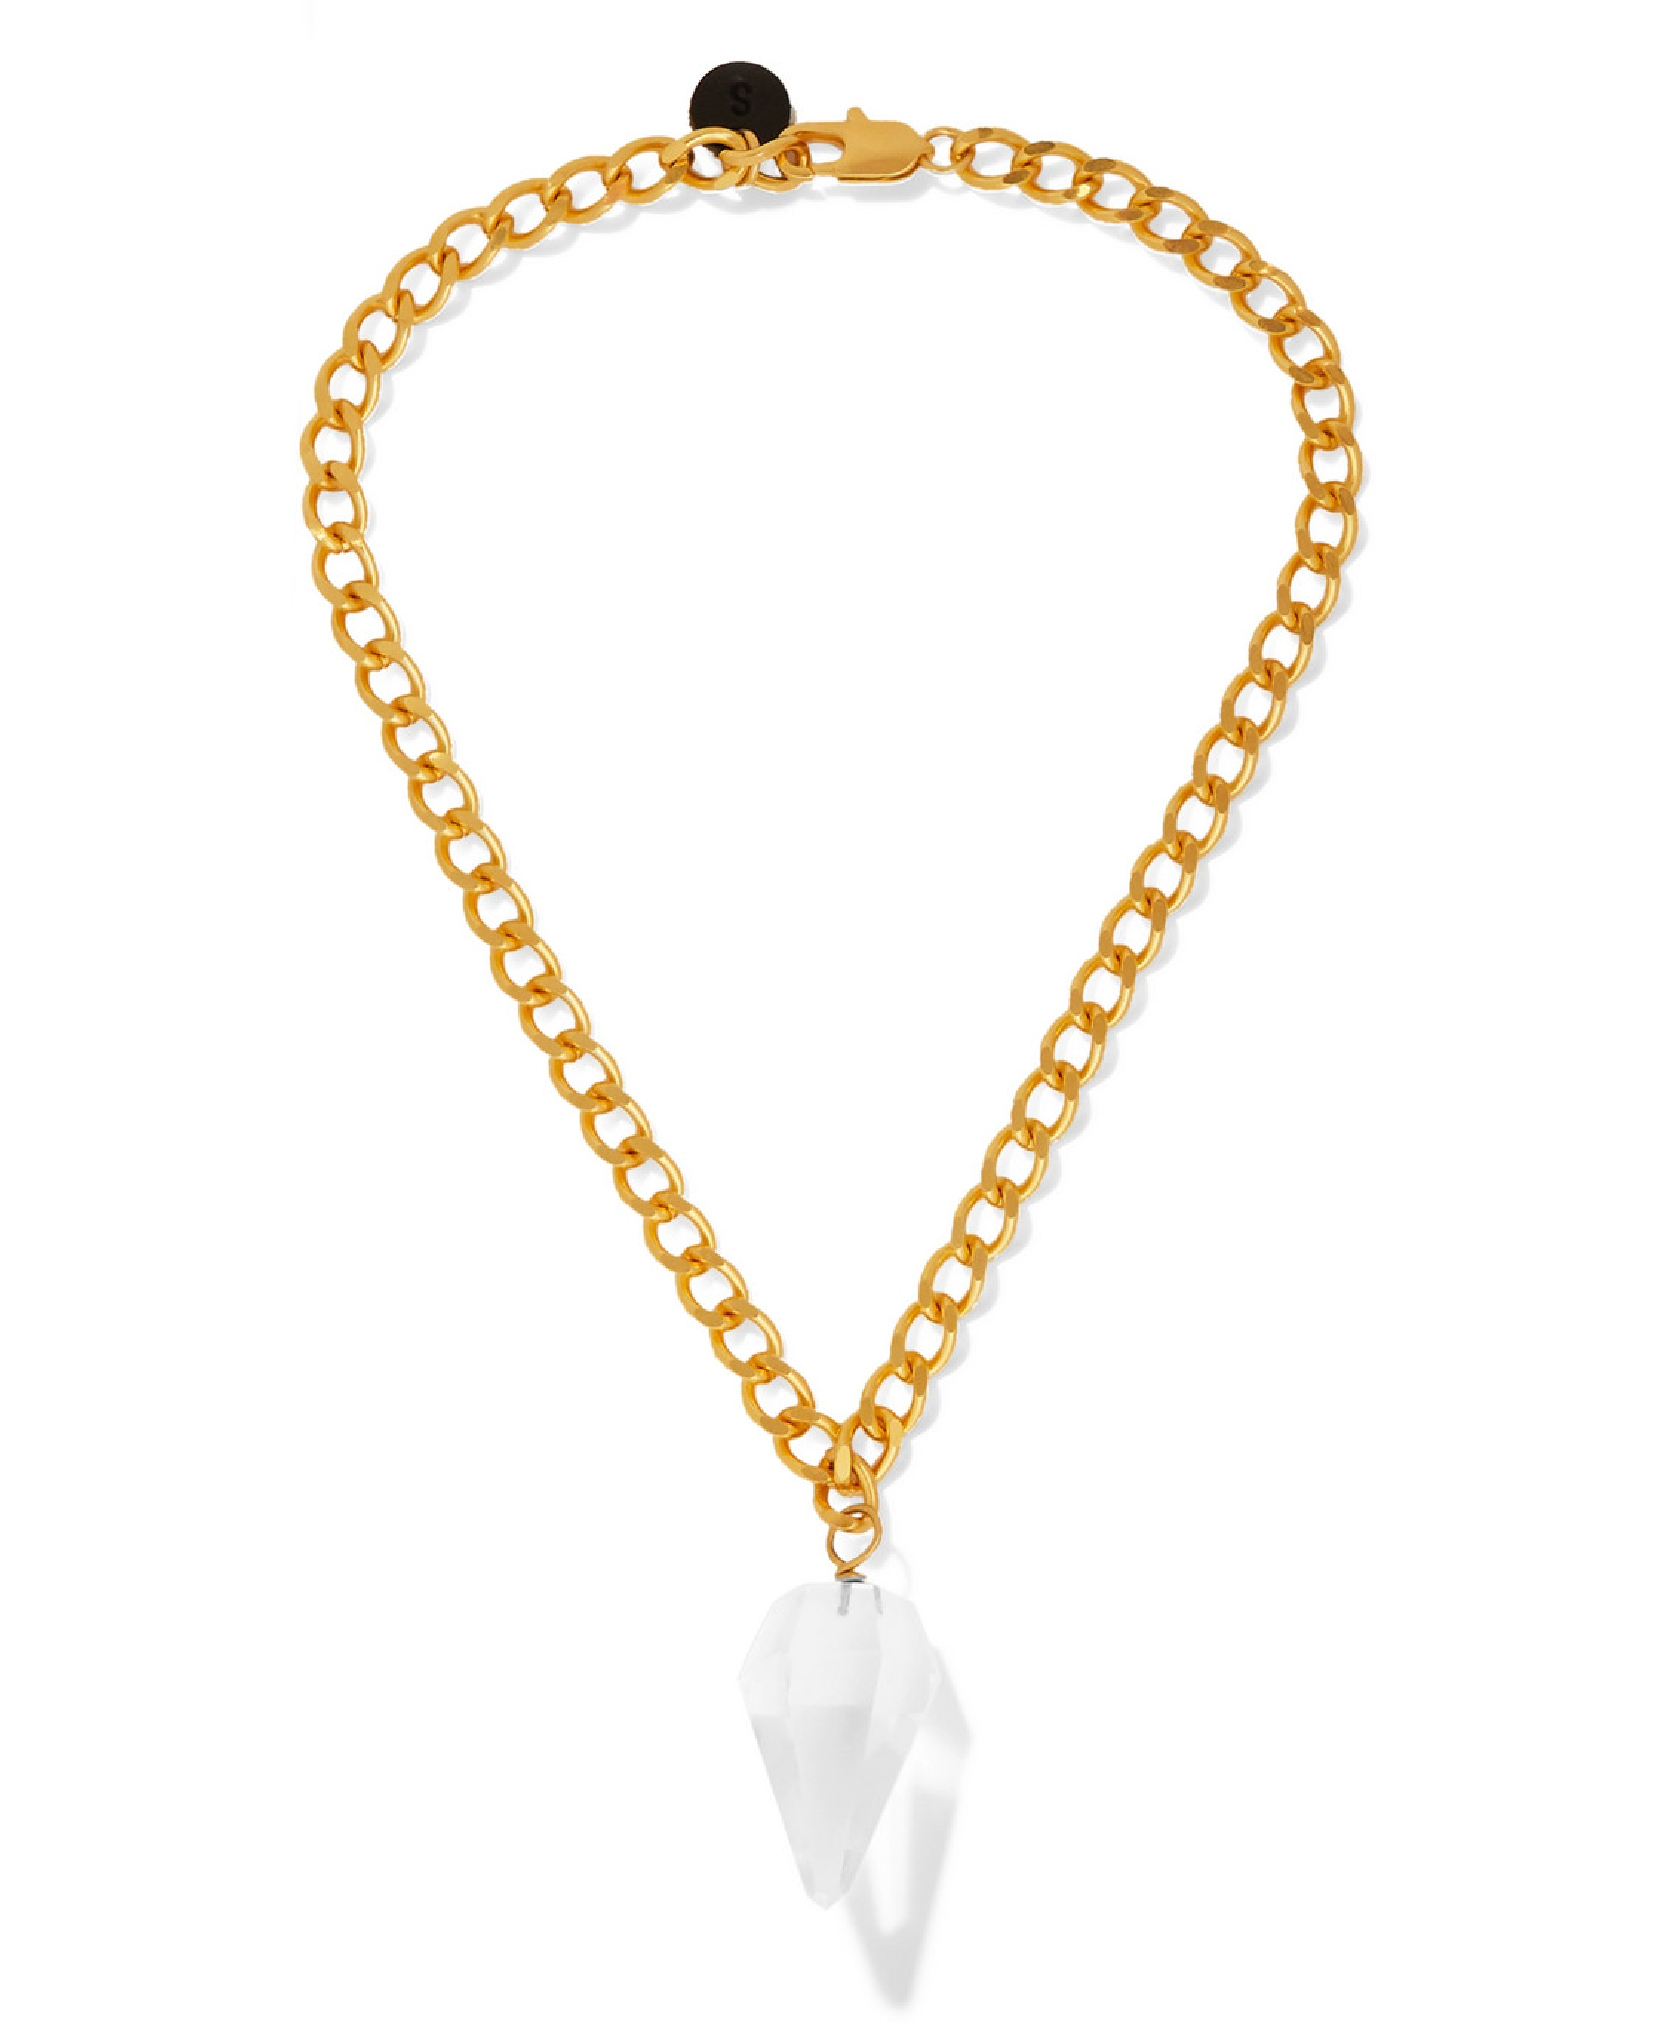 Sirconstance - Gold-Plated Crystal Necklace